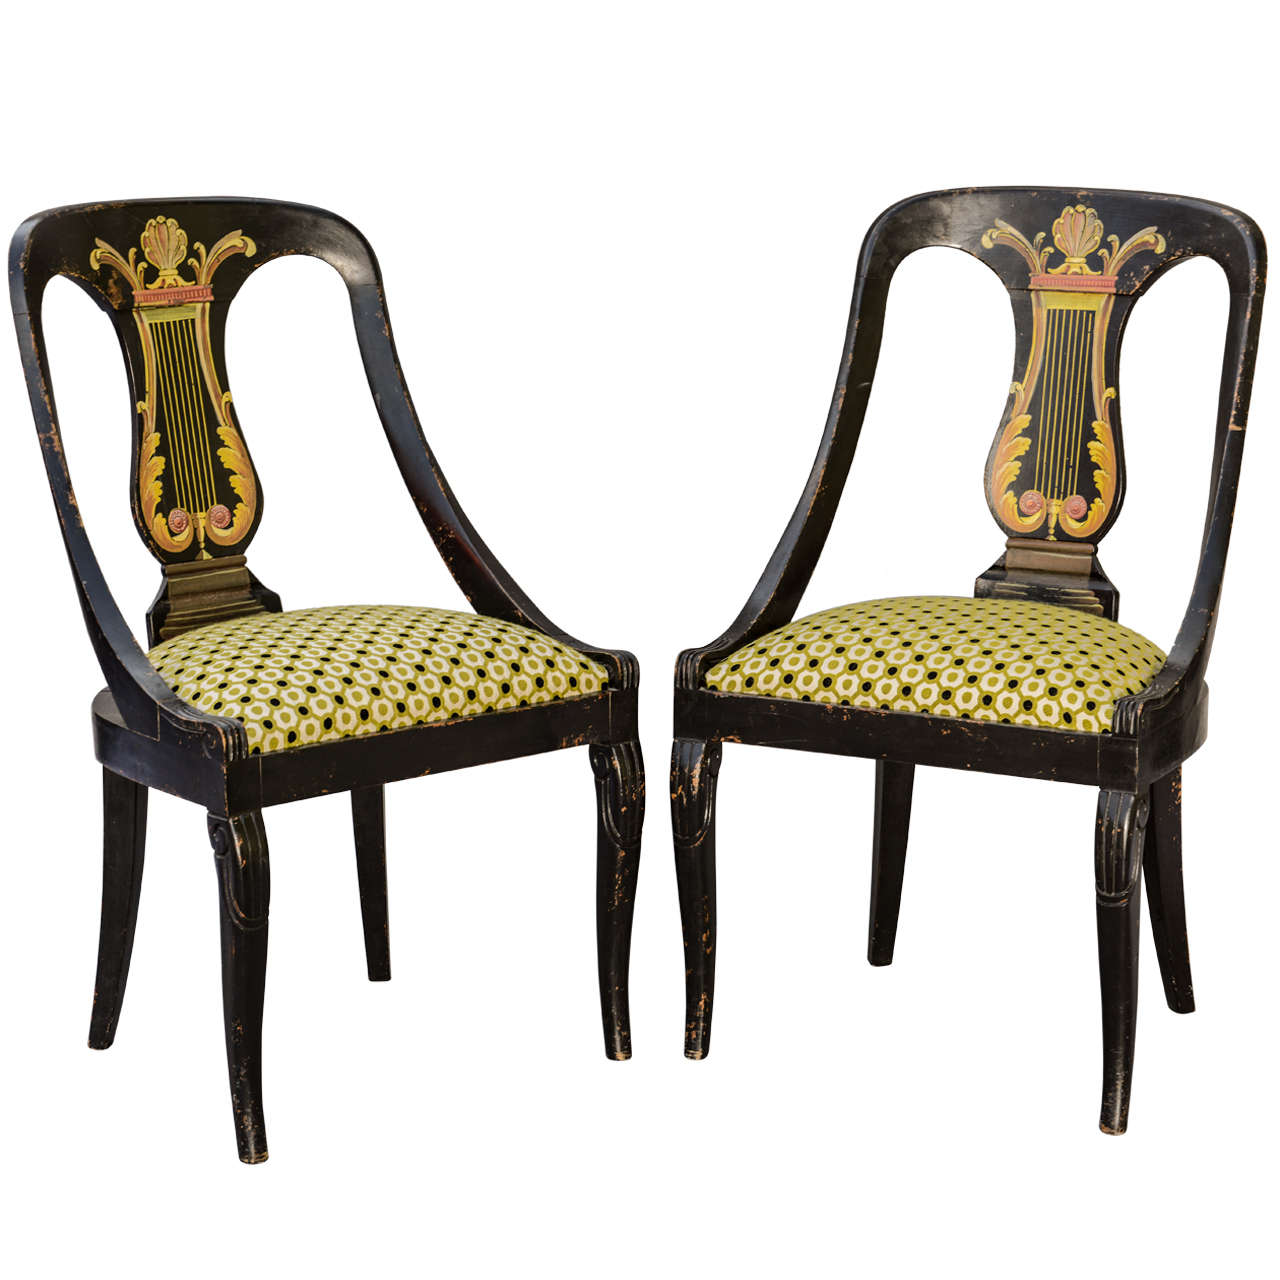 Hand Chairs Pair Of Hand Painted Regency Chairs At 1stdibs